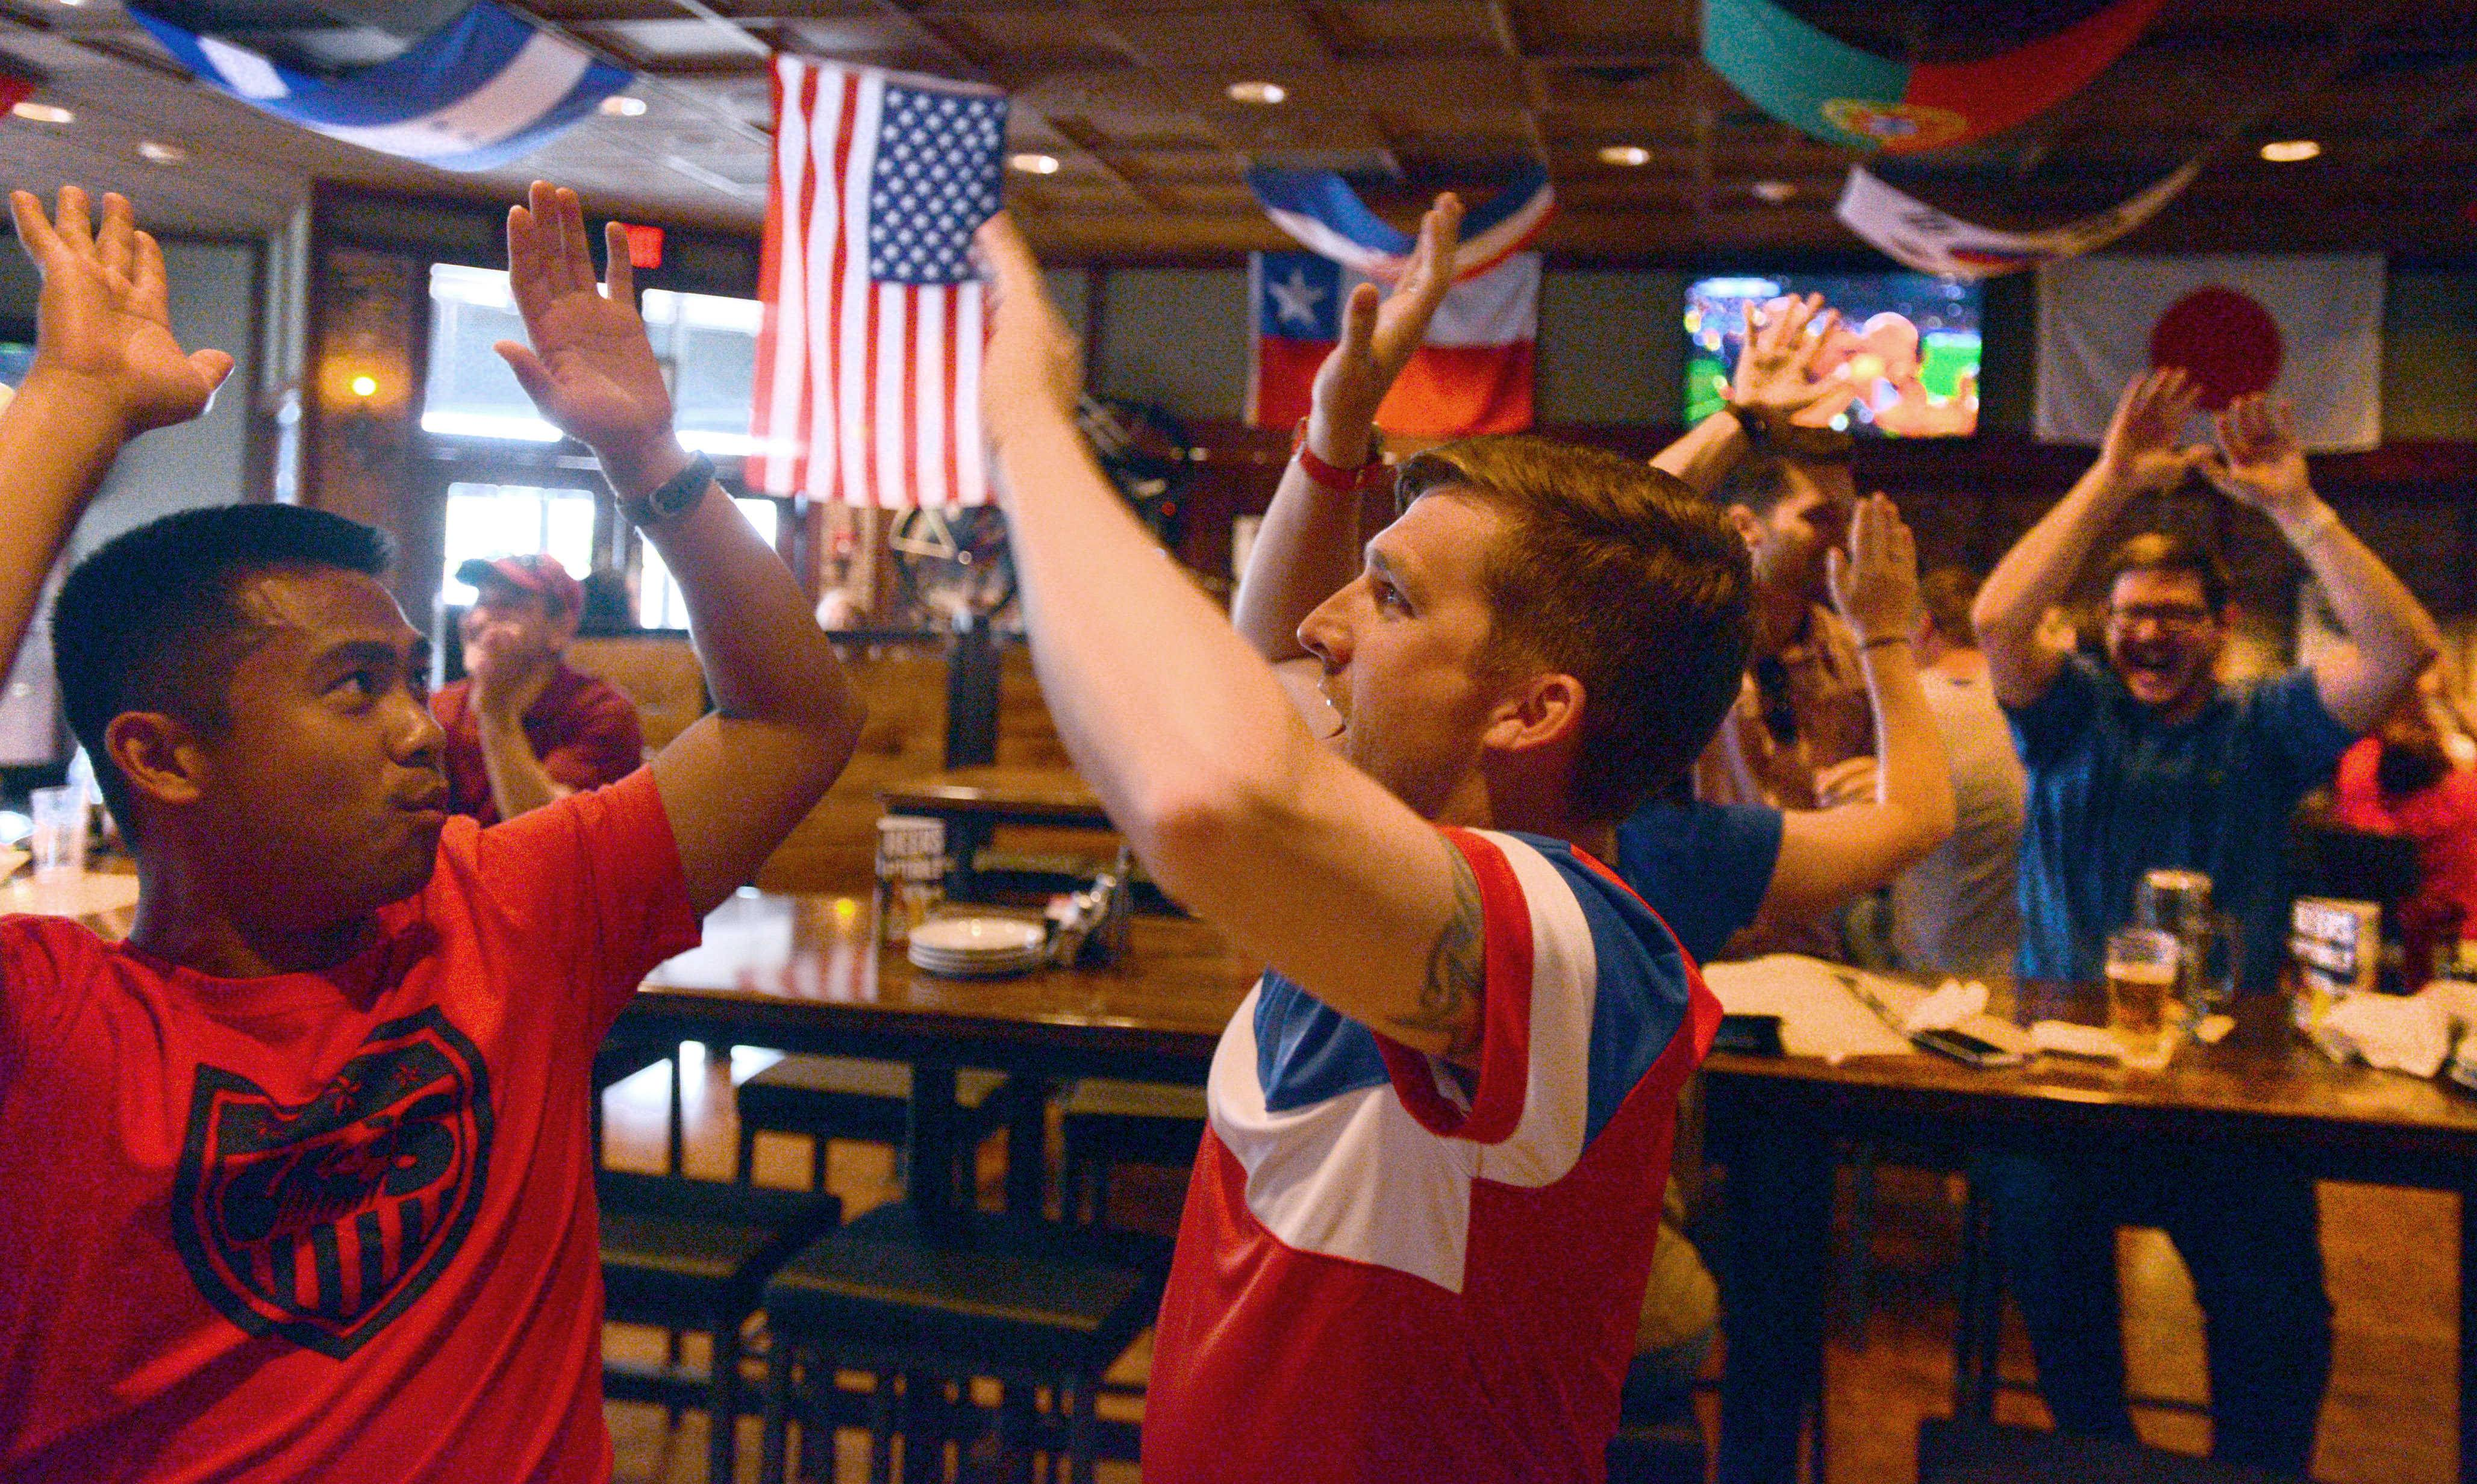 Jonathan Acosta, left, of Addison, and Steve Jenkins of Hoffman Estates have something to be happy about at the conclusion of the United States World Cup soccer game against Ghana on Monday night at the Fox & Hound Sports Tavern in Schaumburg.